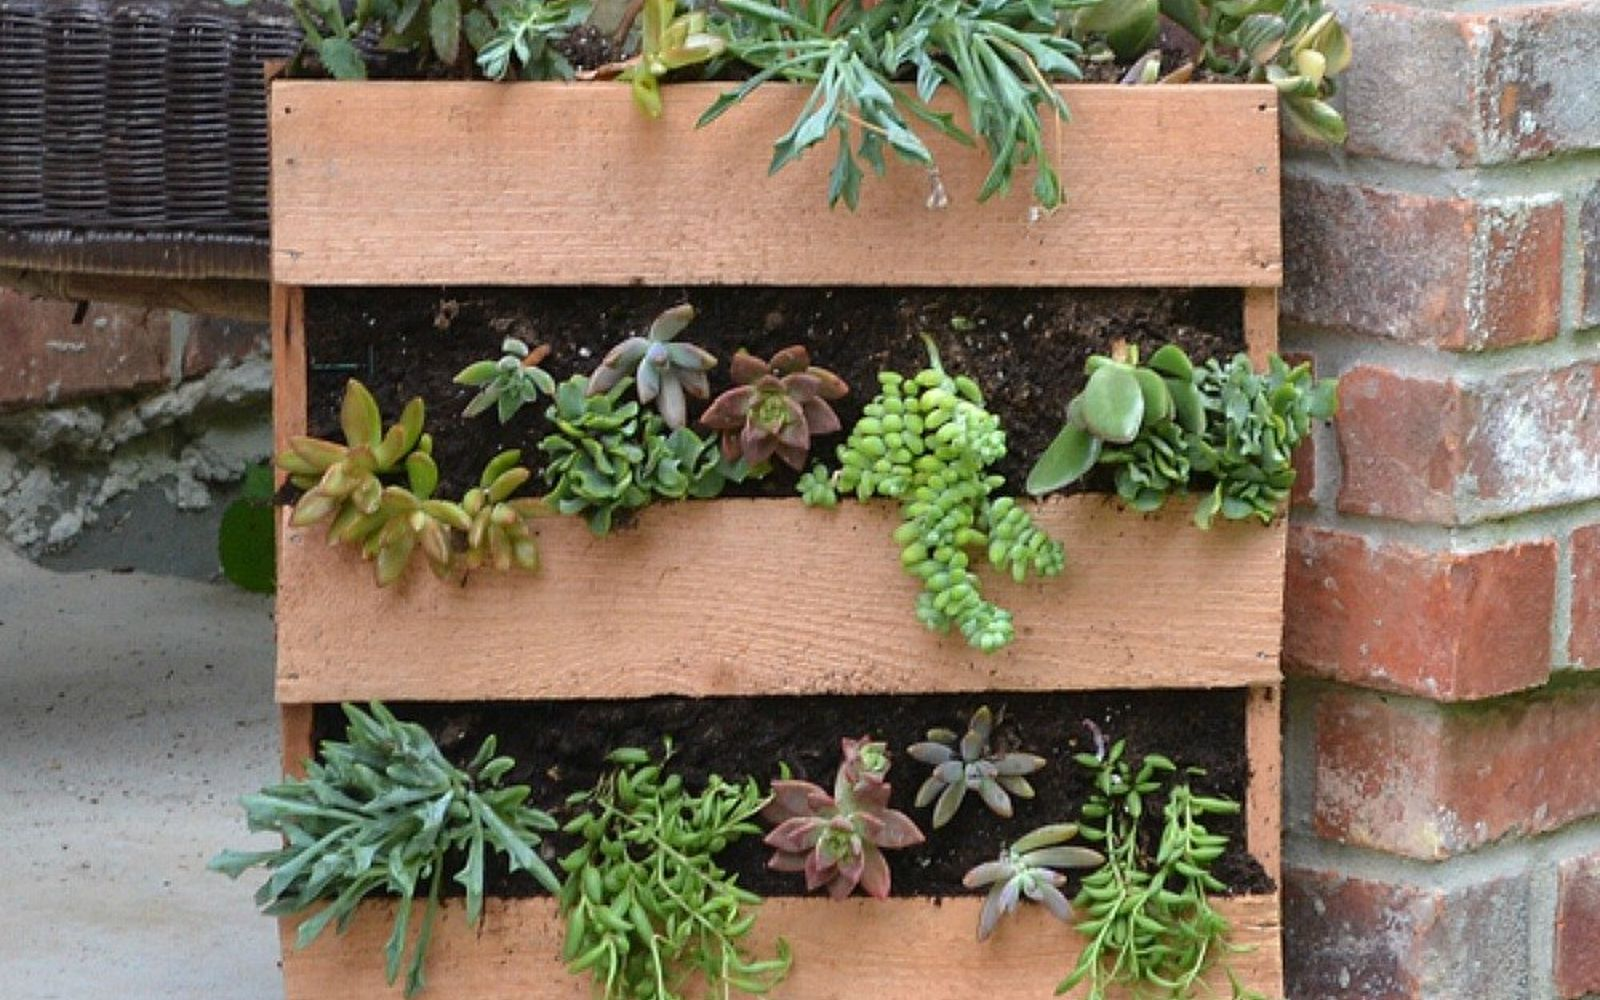 s 17 insanely fun ways to display your favorite succulents, flowers, gardening, succulents, Build a faux pallet planter for your porch